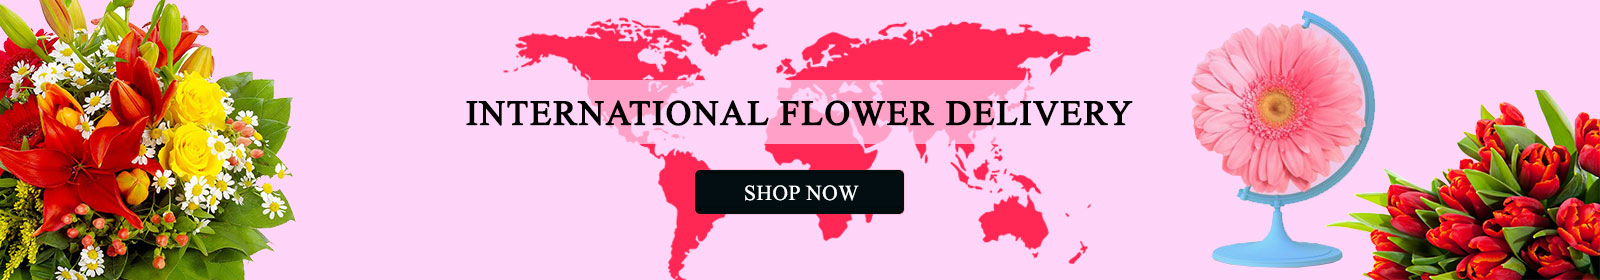 International Flower delivery